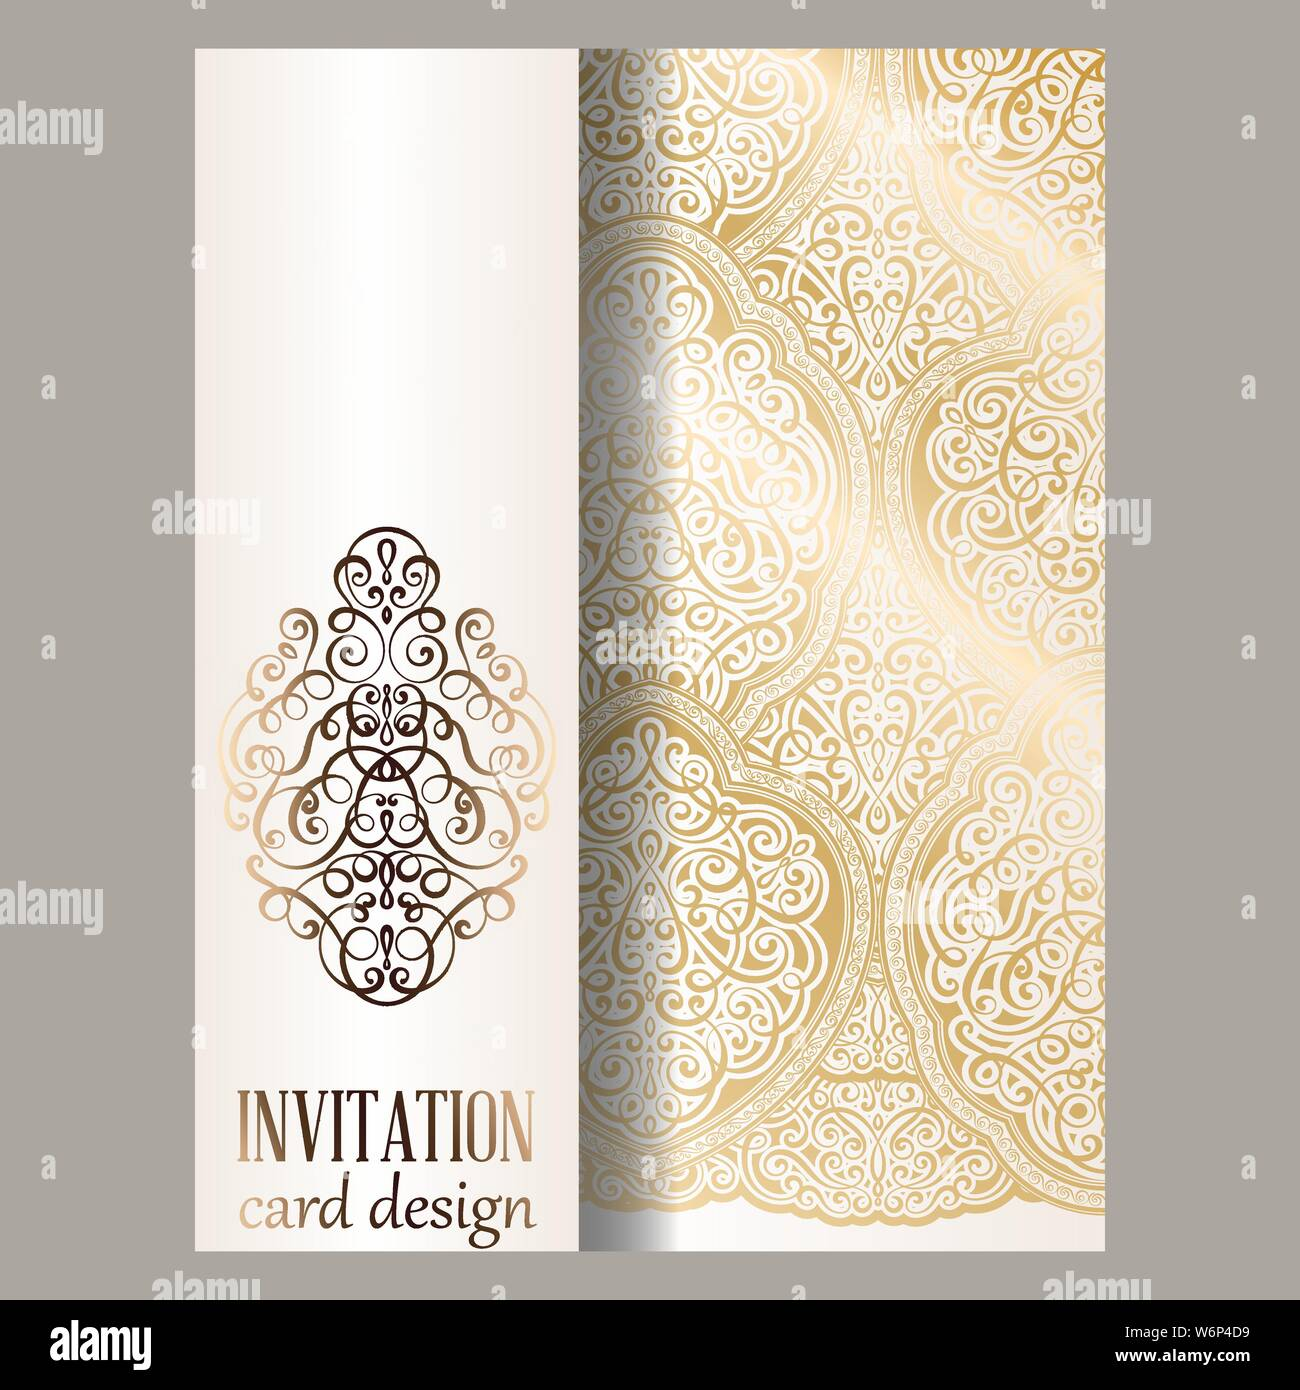 Wedding Invitation Card With Gold Shiny Eastern And Baroque Rich Foliage Ornate Islamic Background For Your Design Islam Arabic Indian Dubai Stock Vector Image Art Alamy